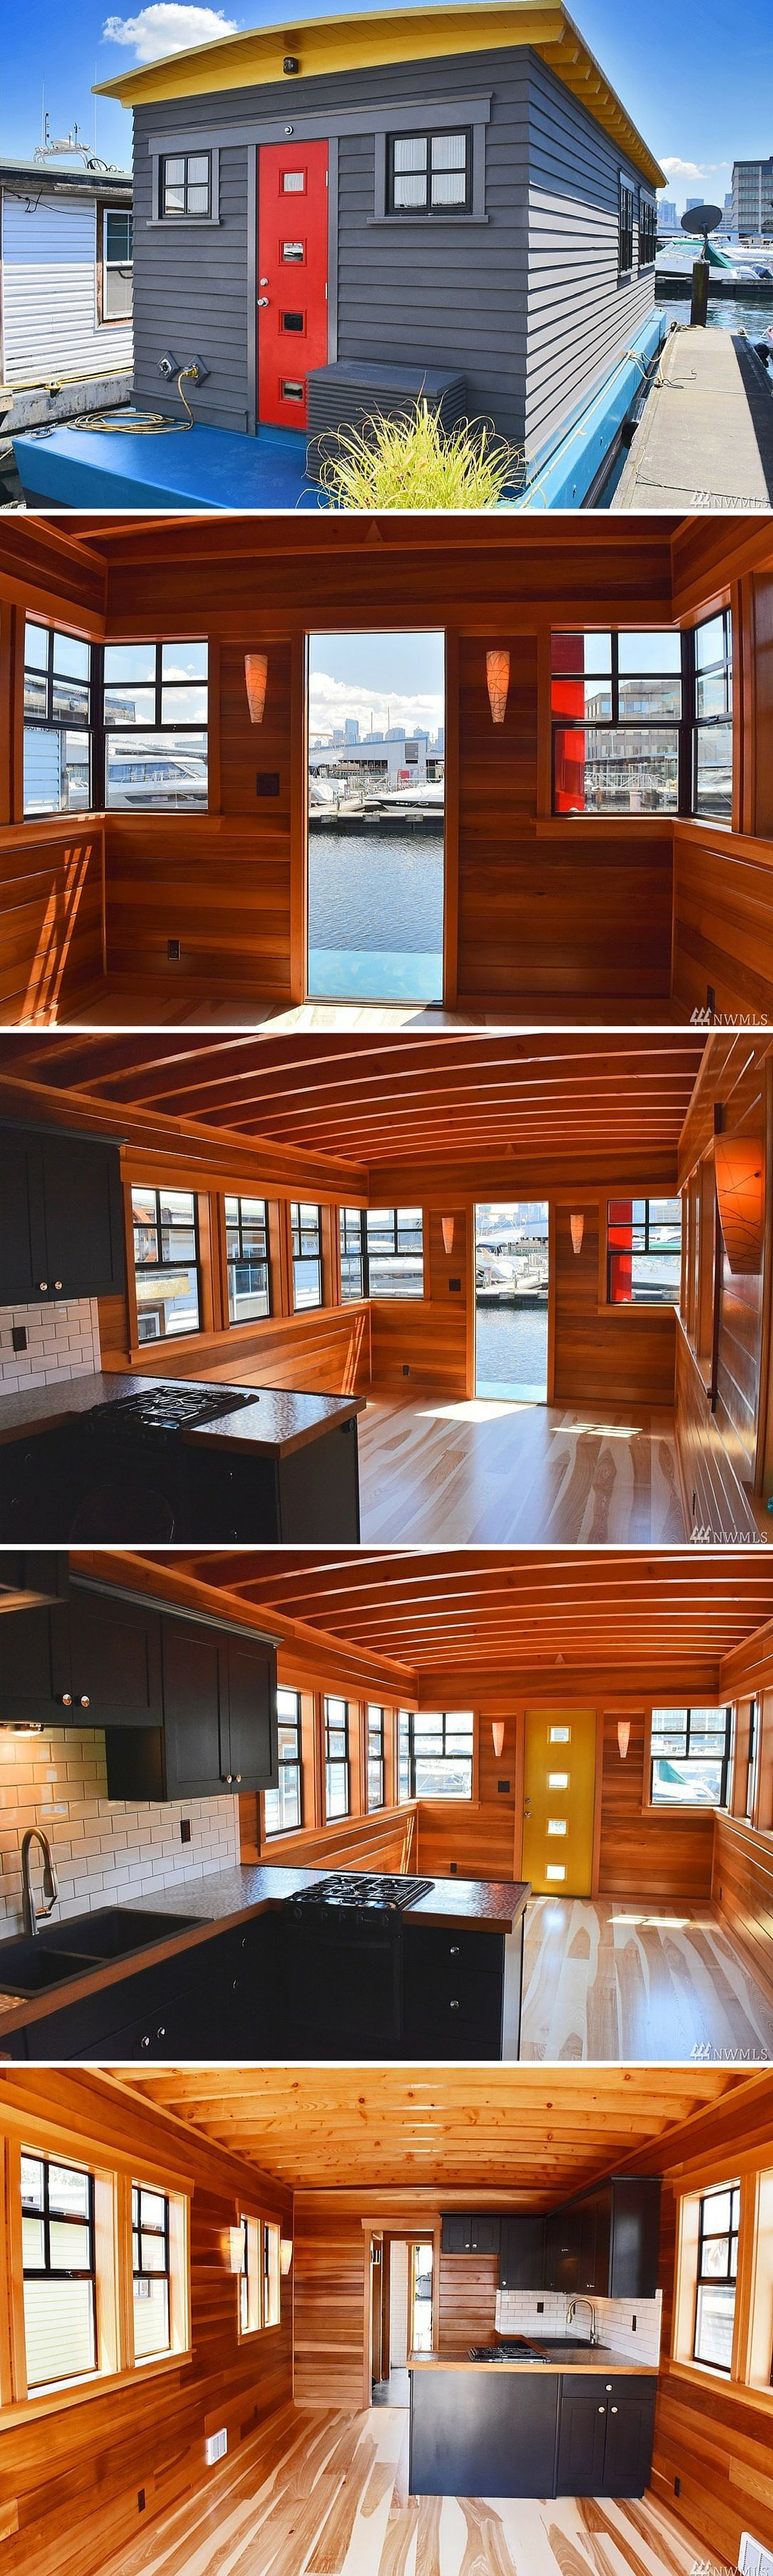 It's About Time: a 400 sq ft houseboat in Seattle | Alternative Tiny Homes | Floating house ...